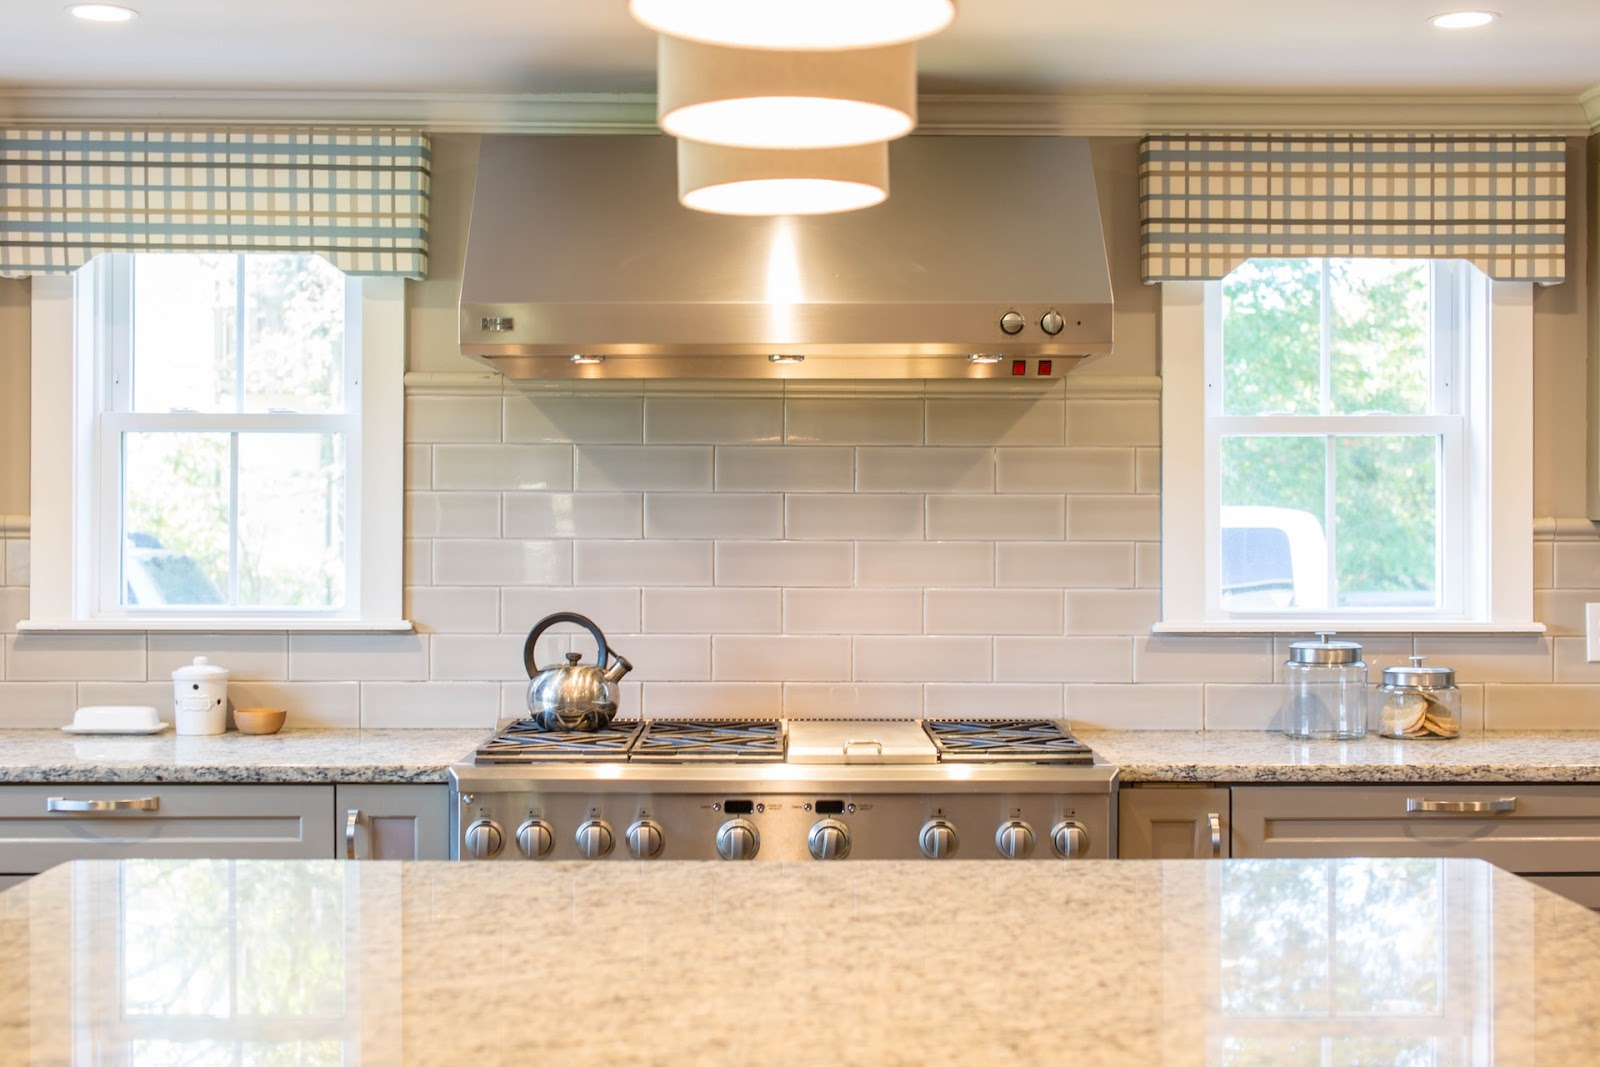 Integrate natural elements in your kitchen using natural stone and throwing the windows open to invite natural light.